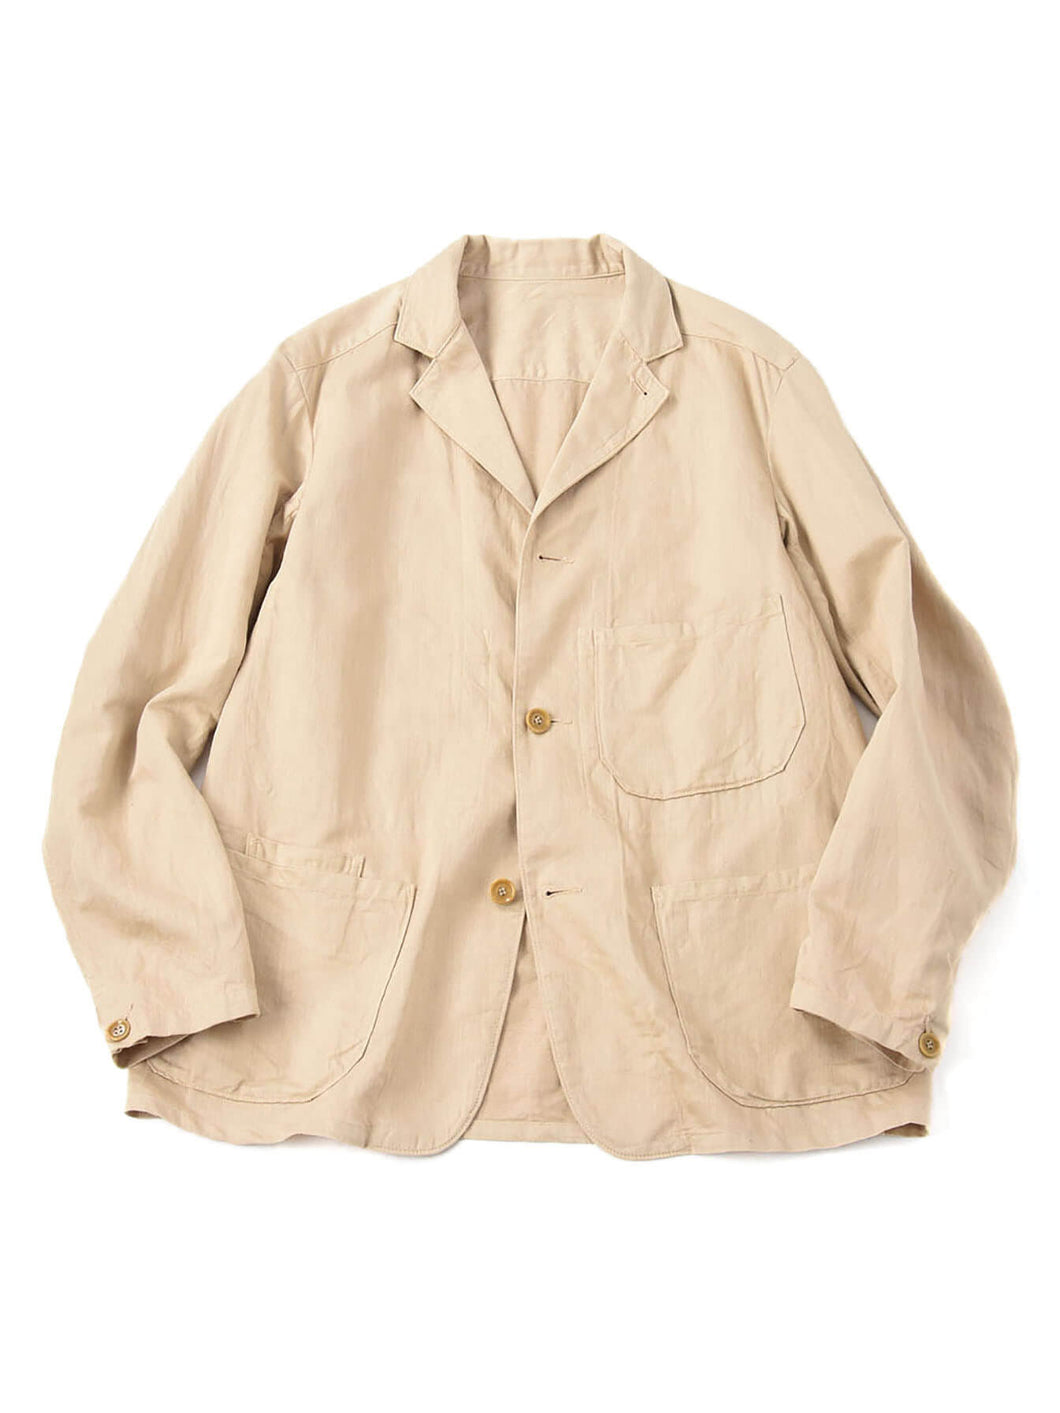 Cotton Linen Goma Chino ST Jacket in beige